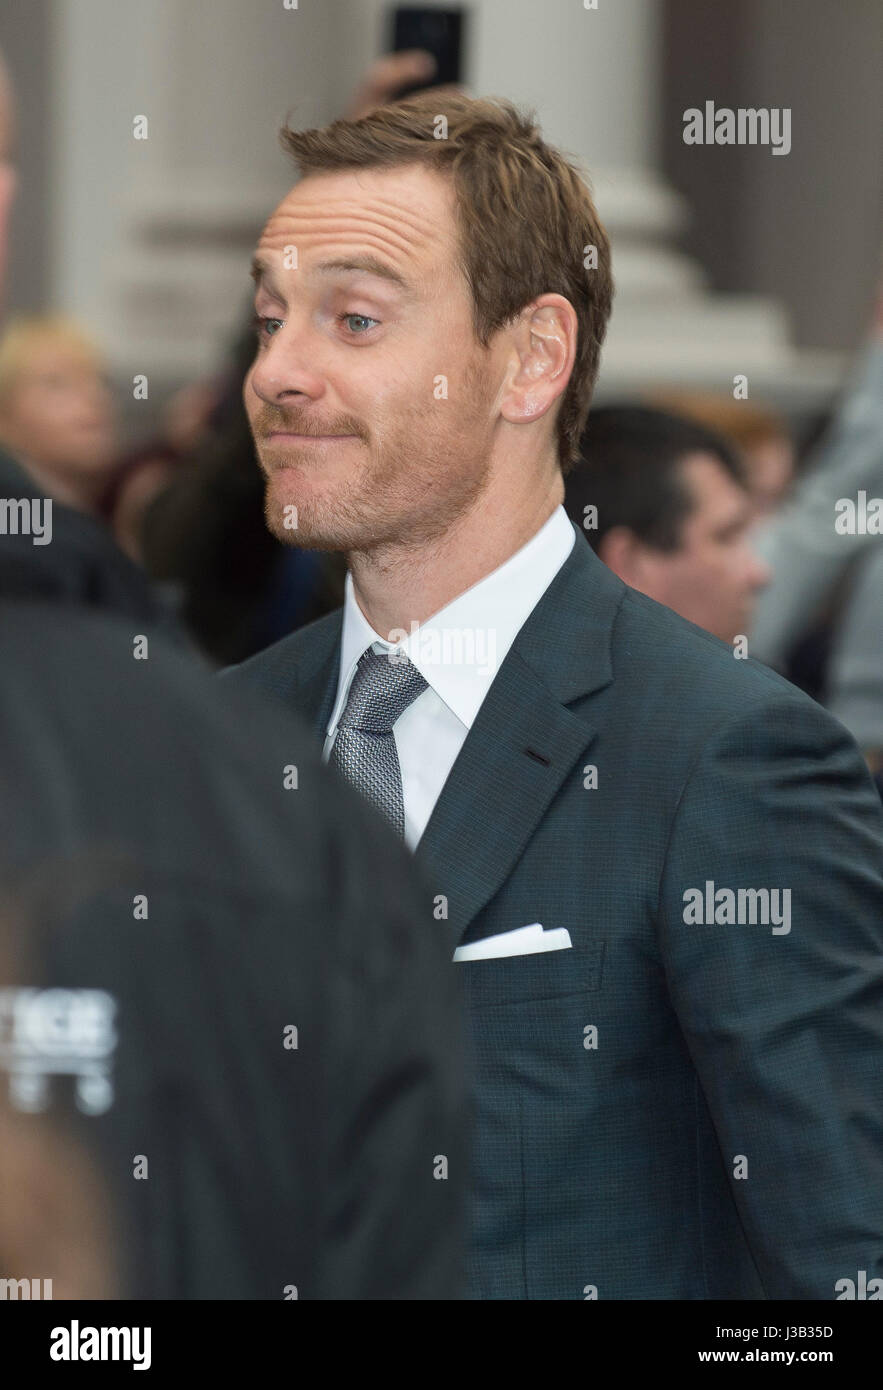 Alien Covenant Film Premiere Red Carpet Arrivals - Stock Image